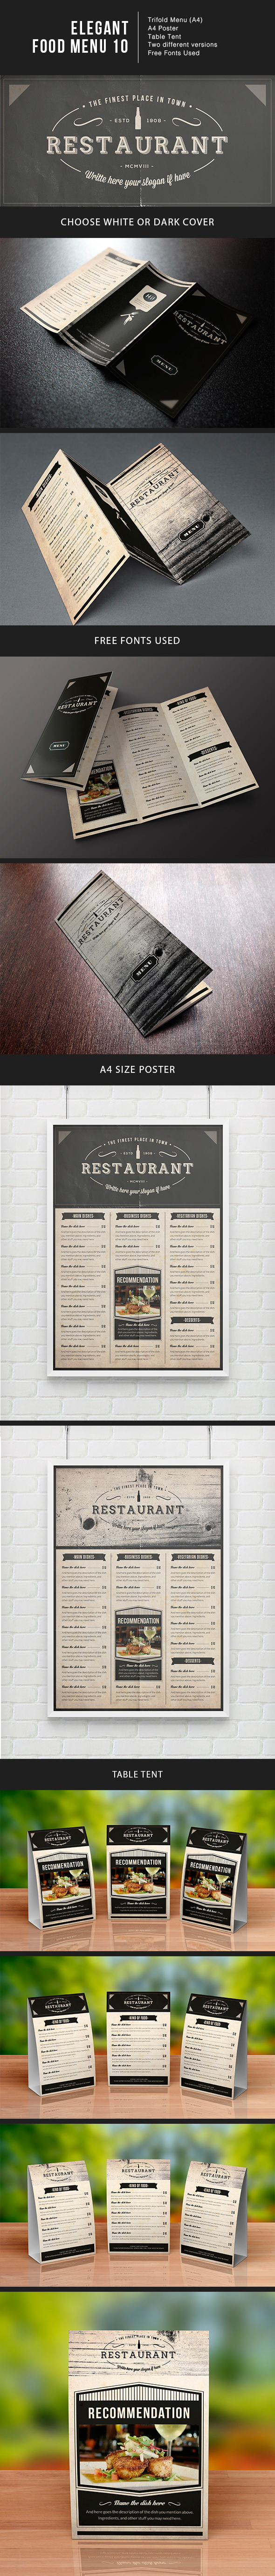 elegant food menu